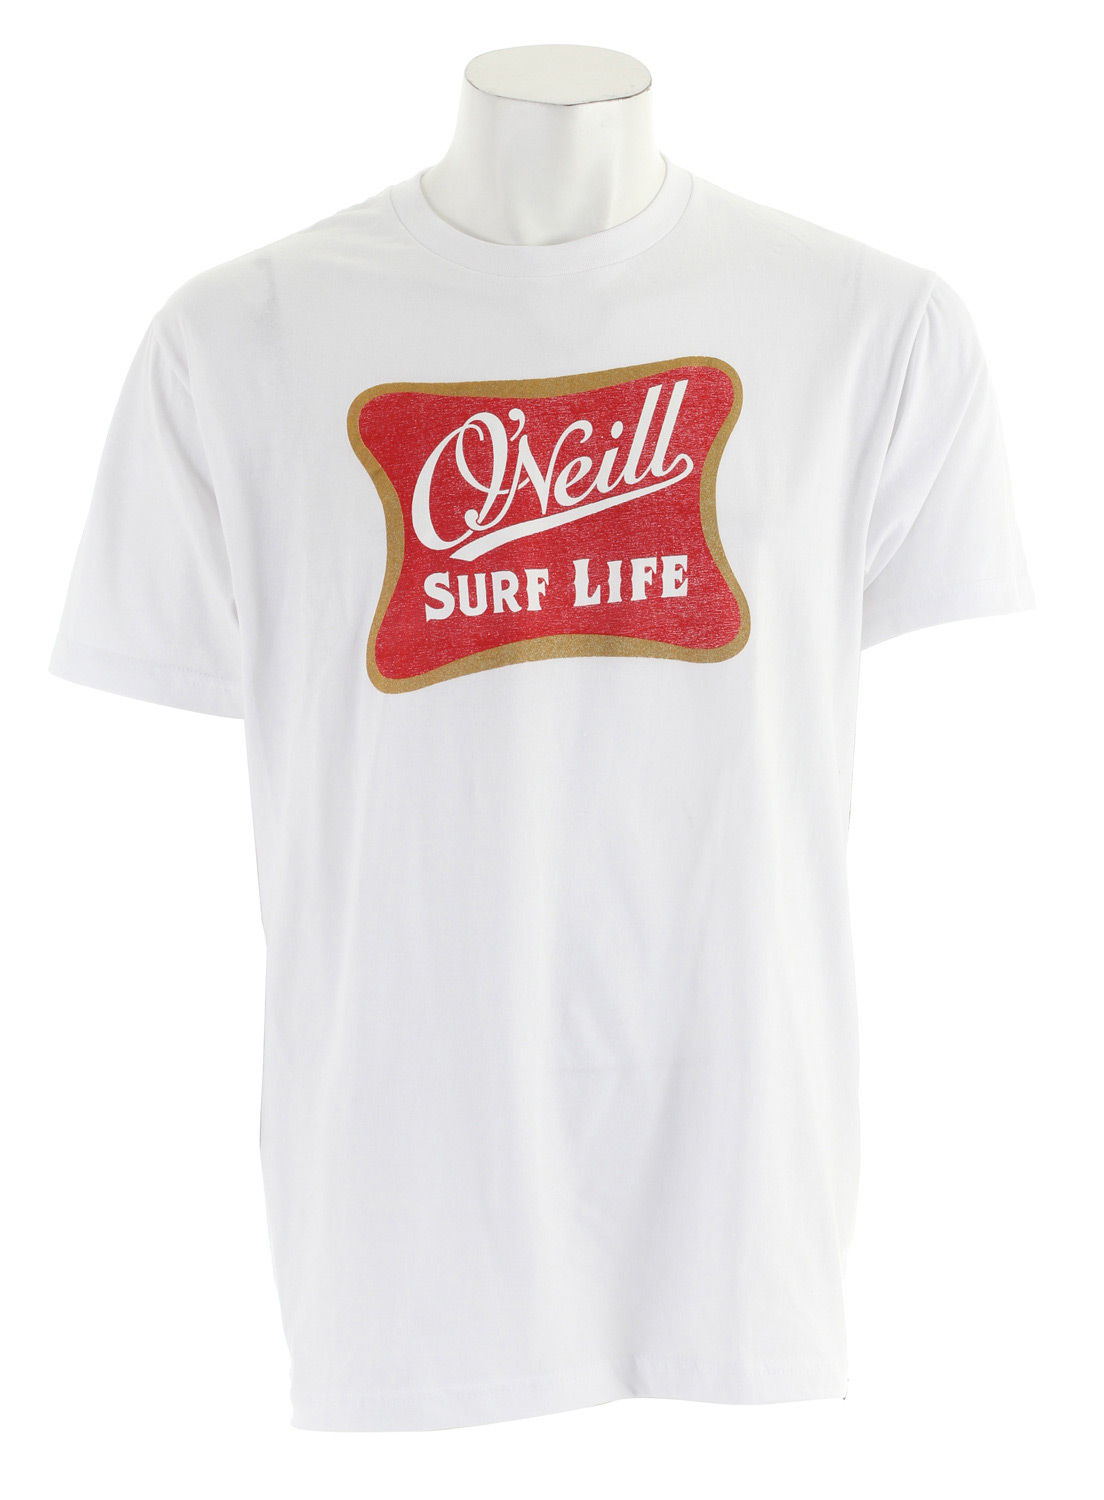 Surf Key Features of The O'Neill Good Life T-Shirt: Slim Fit Crew Neck Short Sleeve 100% ringspun cotton - $21.95